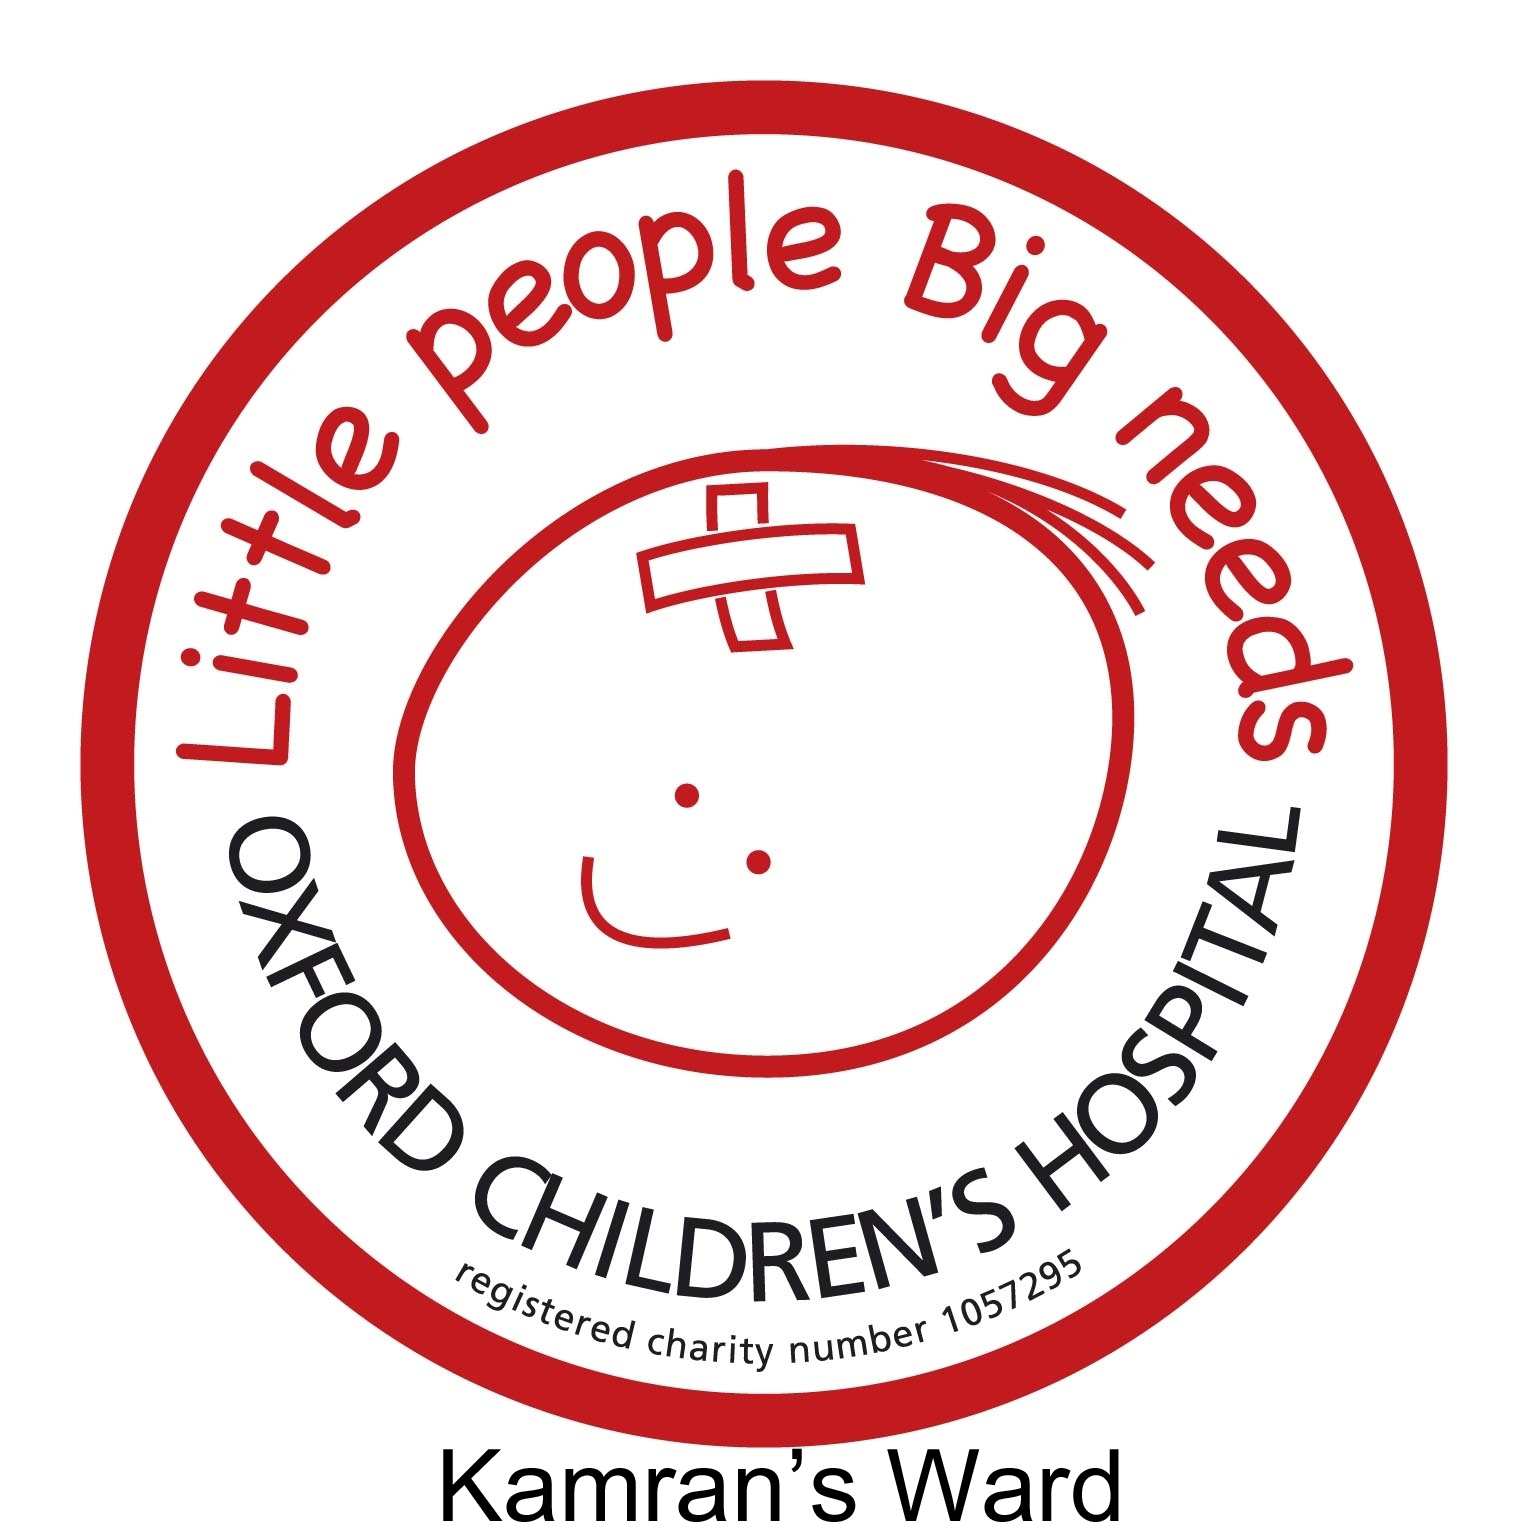 Oxford Children's Hospital, Kamran's Ward logo